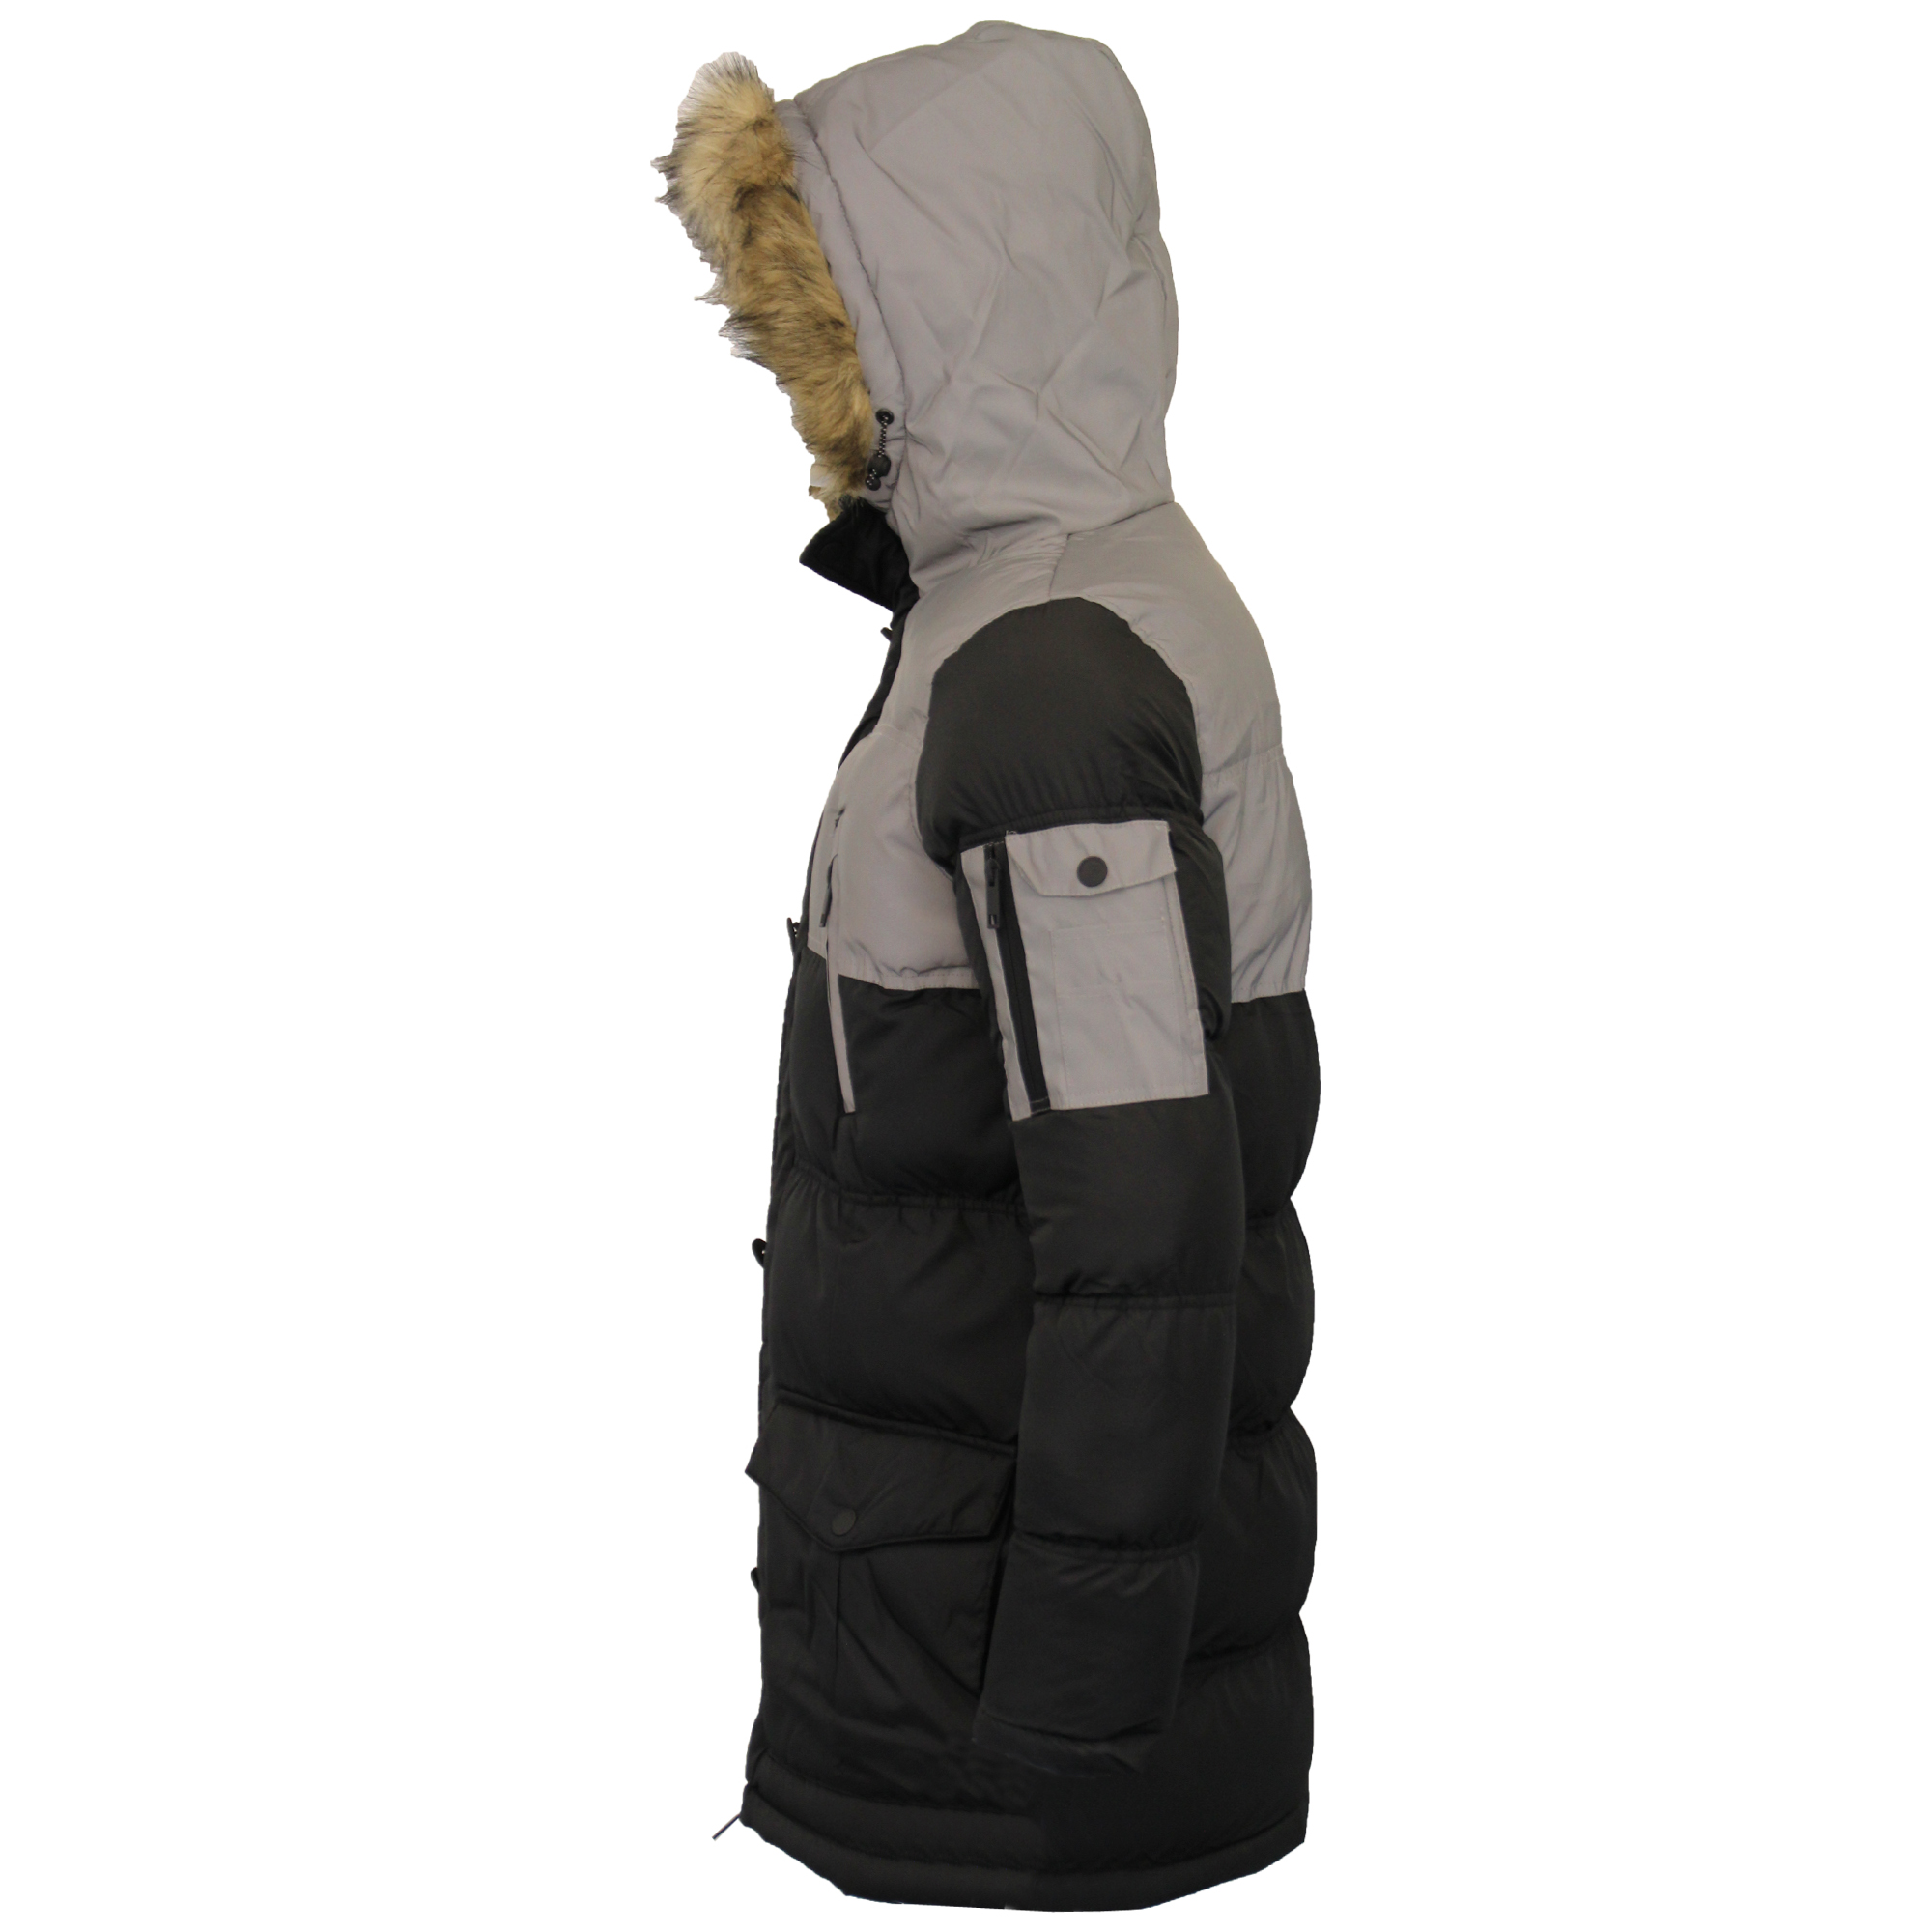 Mens-Reflective-Long-Bubble-Parka-Jacket-Brave-Soul-Coat-Hooded-Padded-Winter thumbnail 4